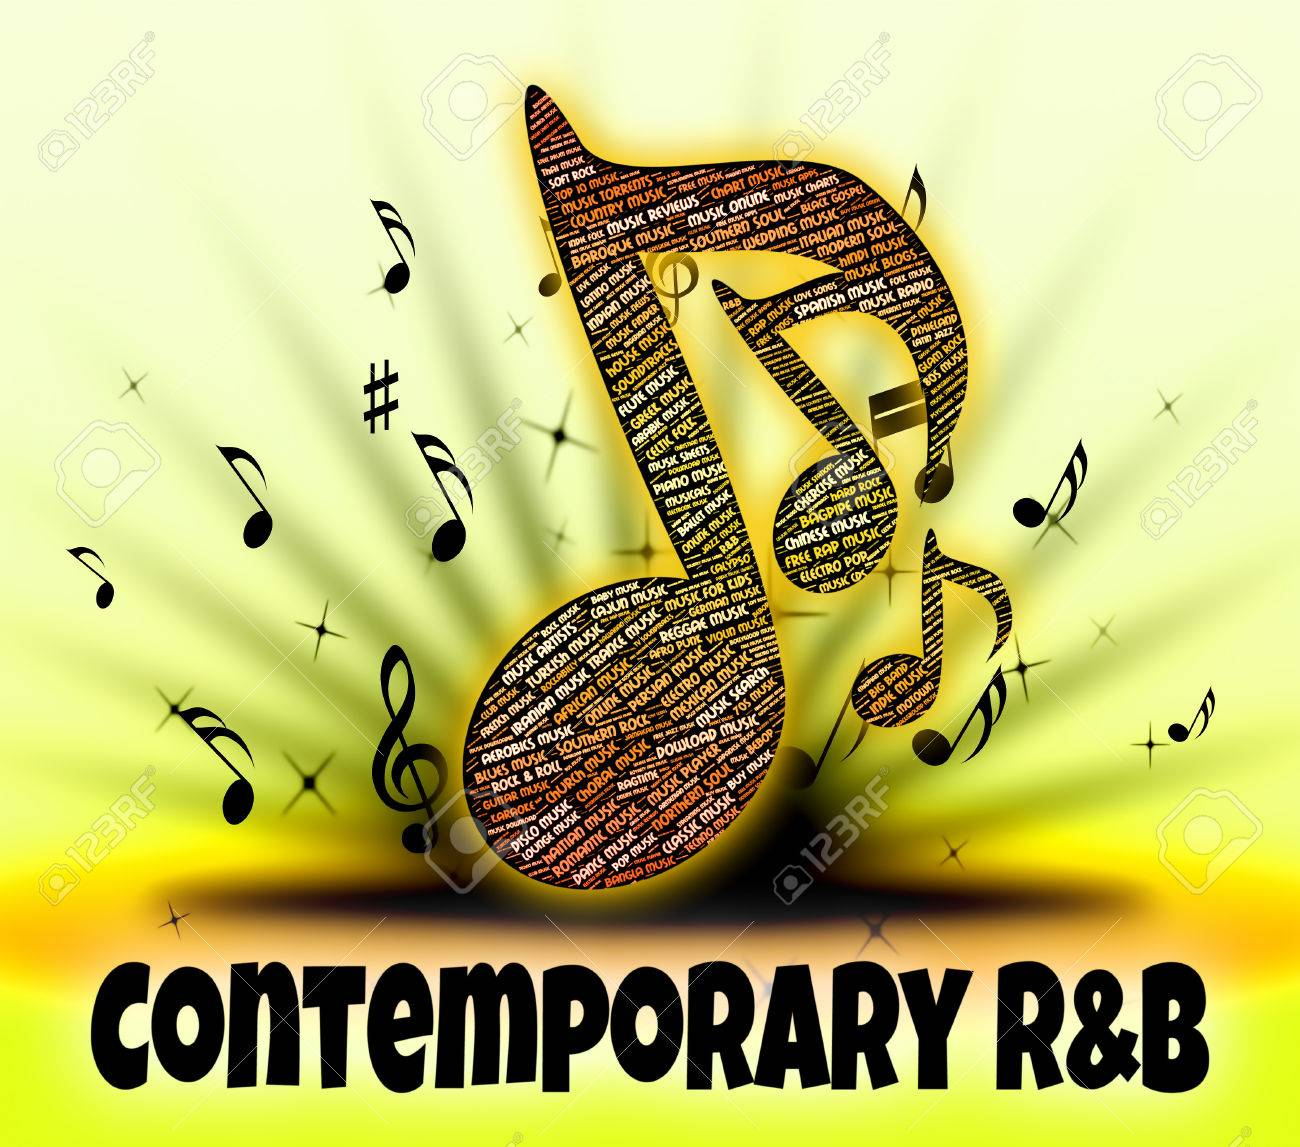 Contemporary Rb Showing Rhythm And Blues And Present Day Stock Photo